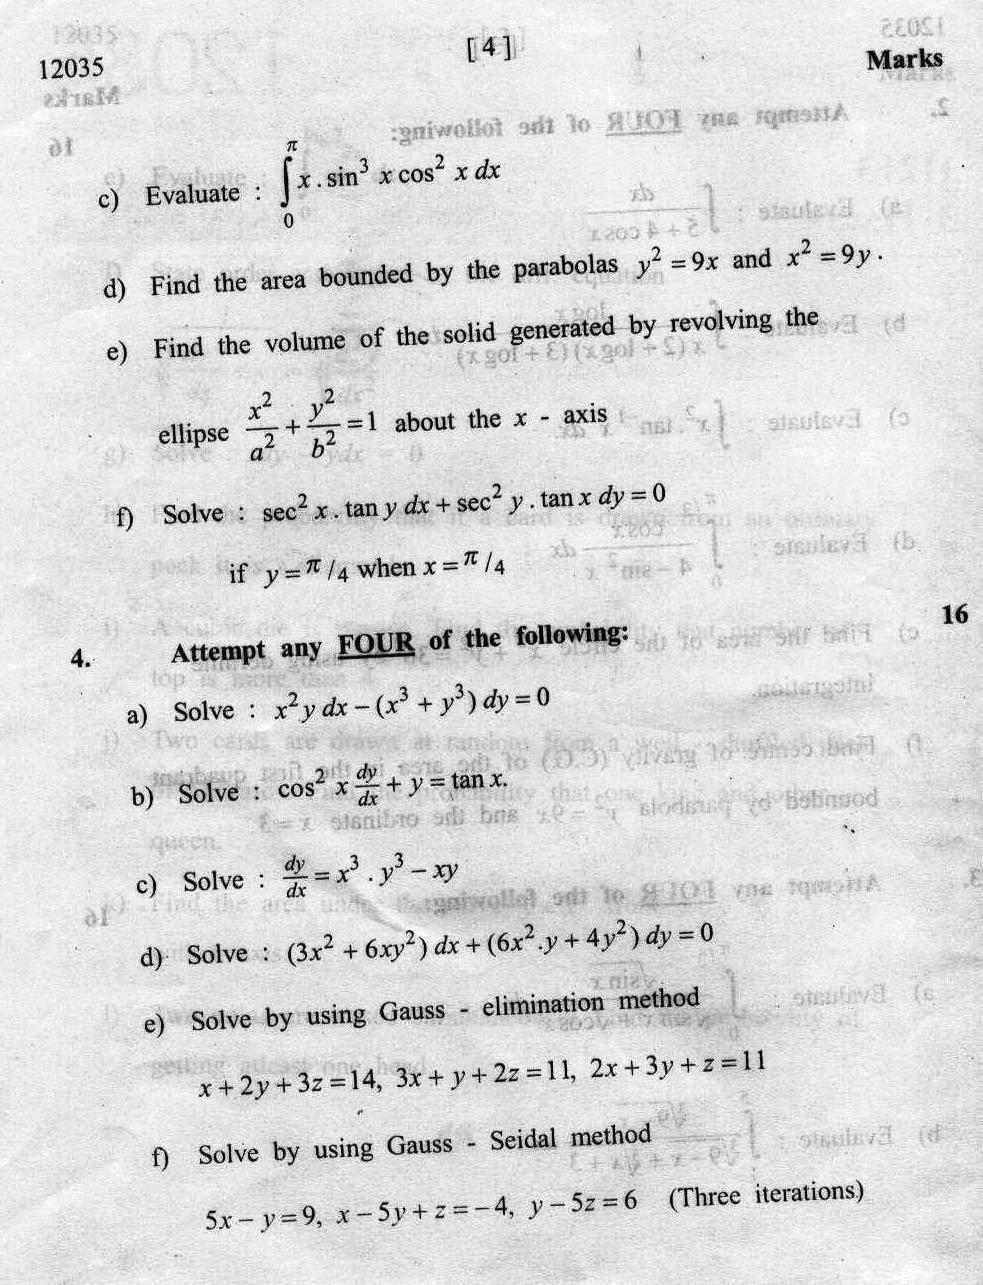 MSBTE Mumbai 3rd Sem DME Applied Mathematics 2012 Question